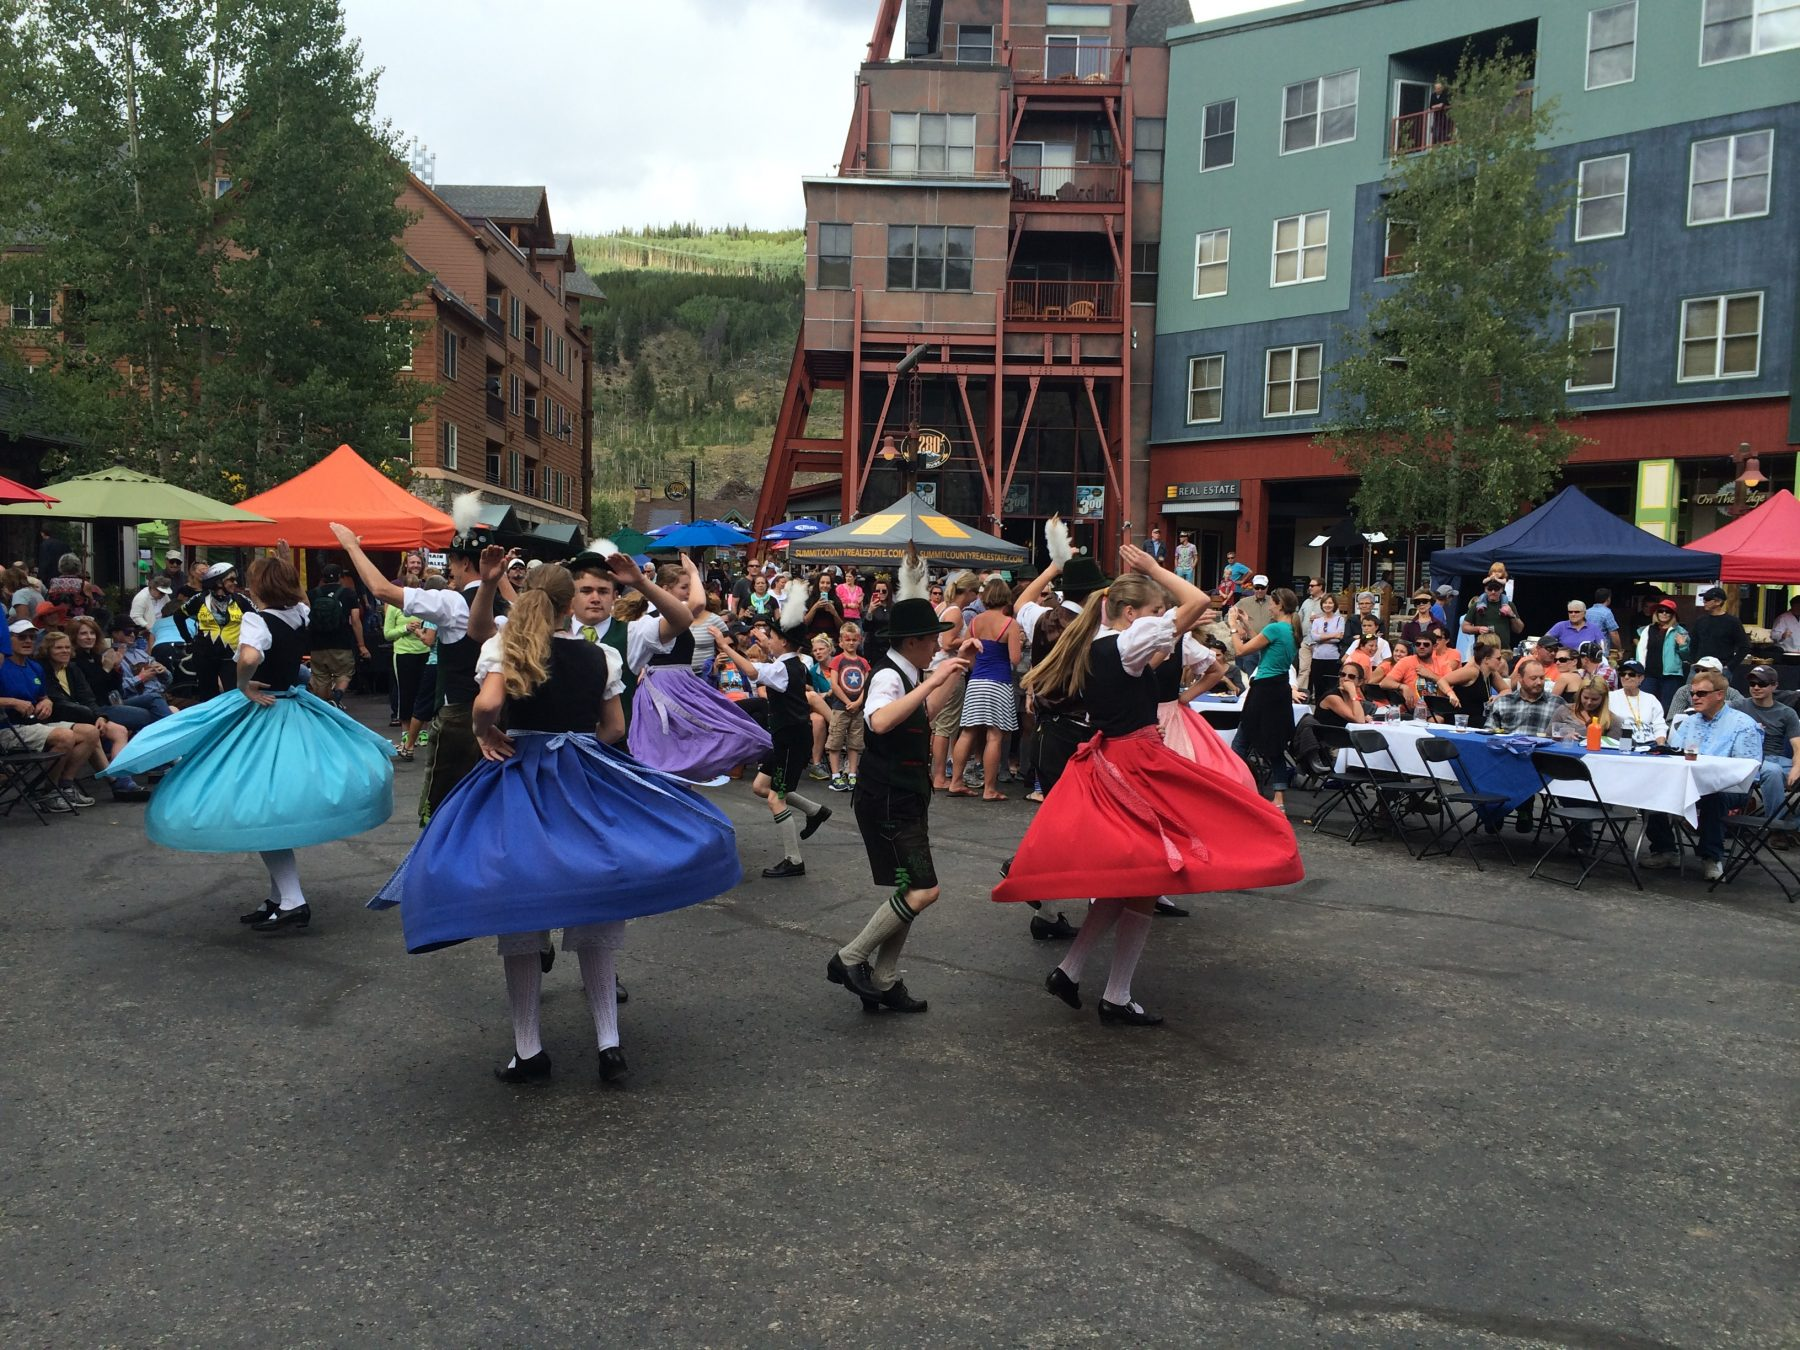 Keystone's Family Friendly Oktoberfest Returns Sept. 5 For Labor Day Weekend Fun In The Mountains!